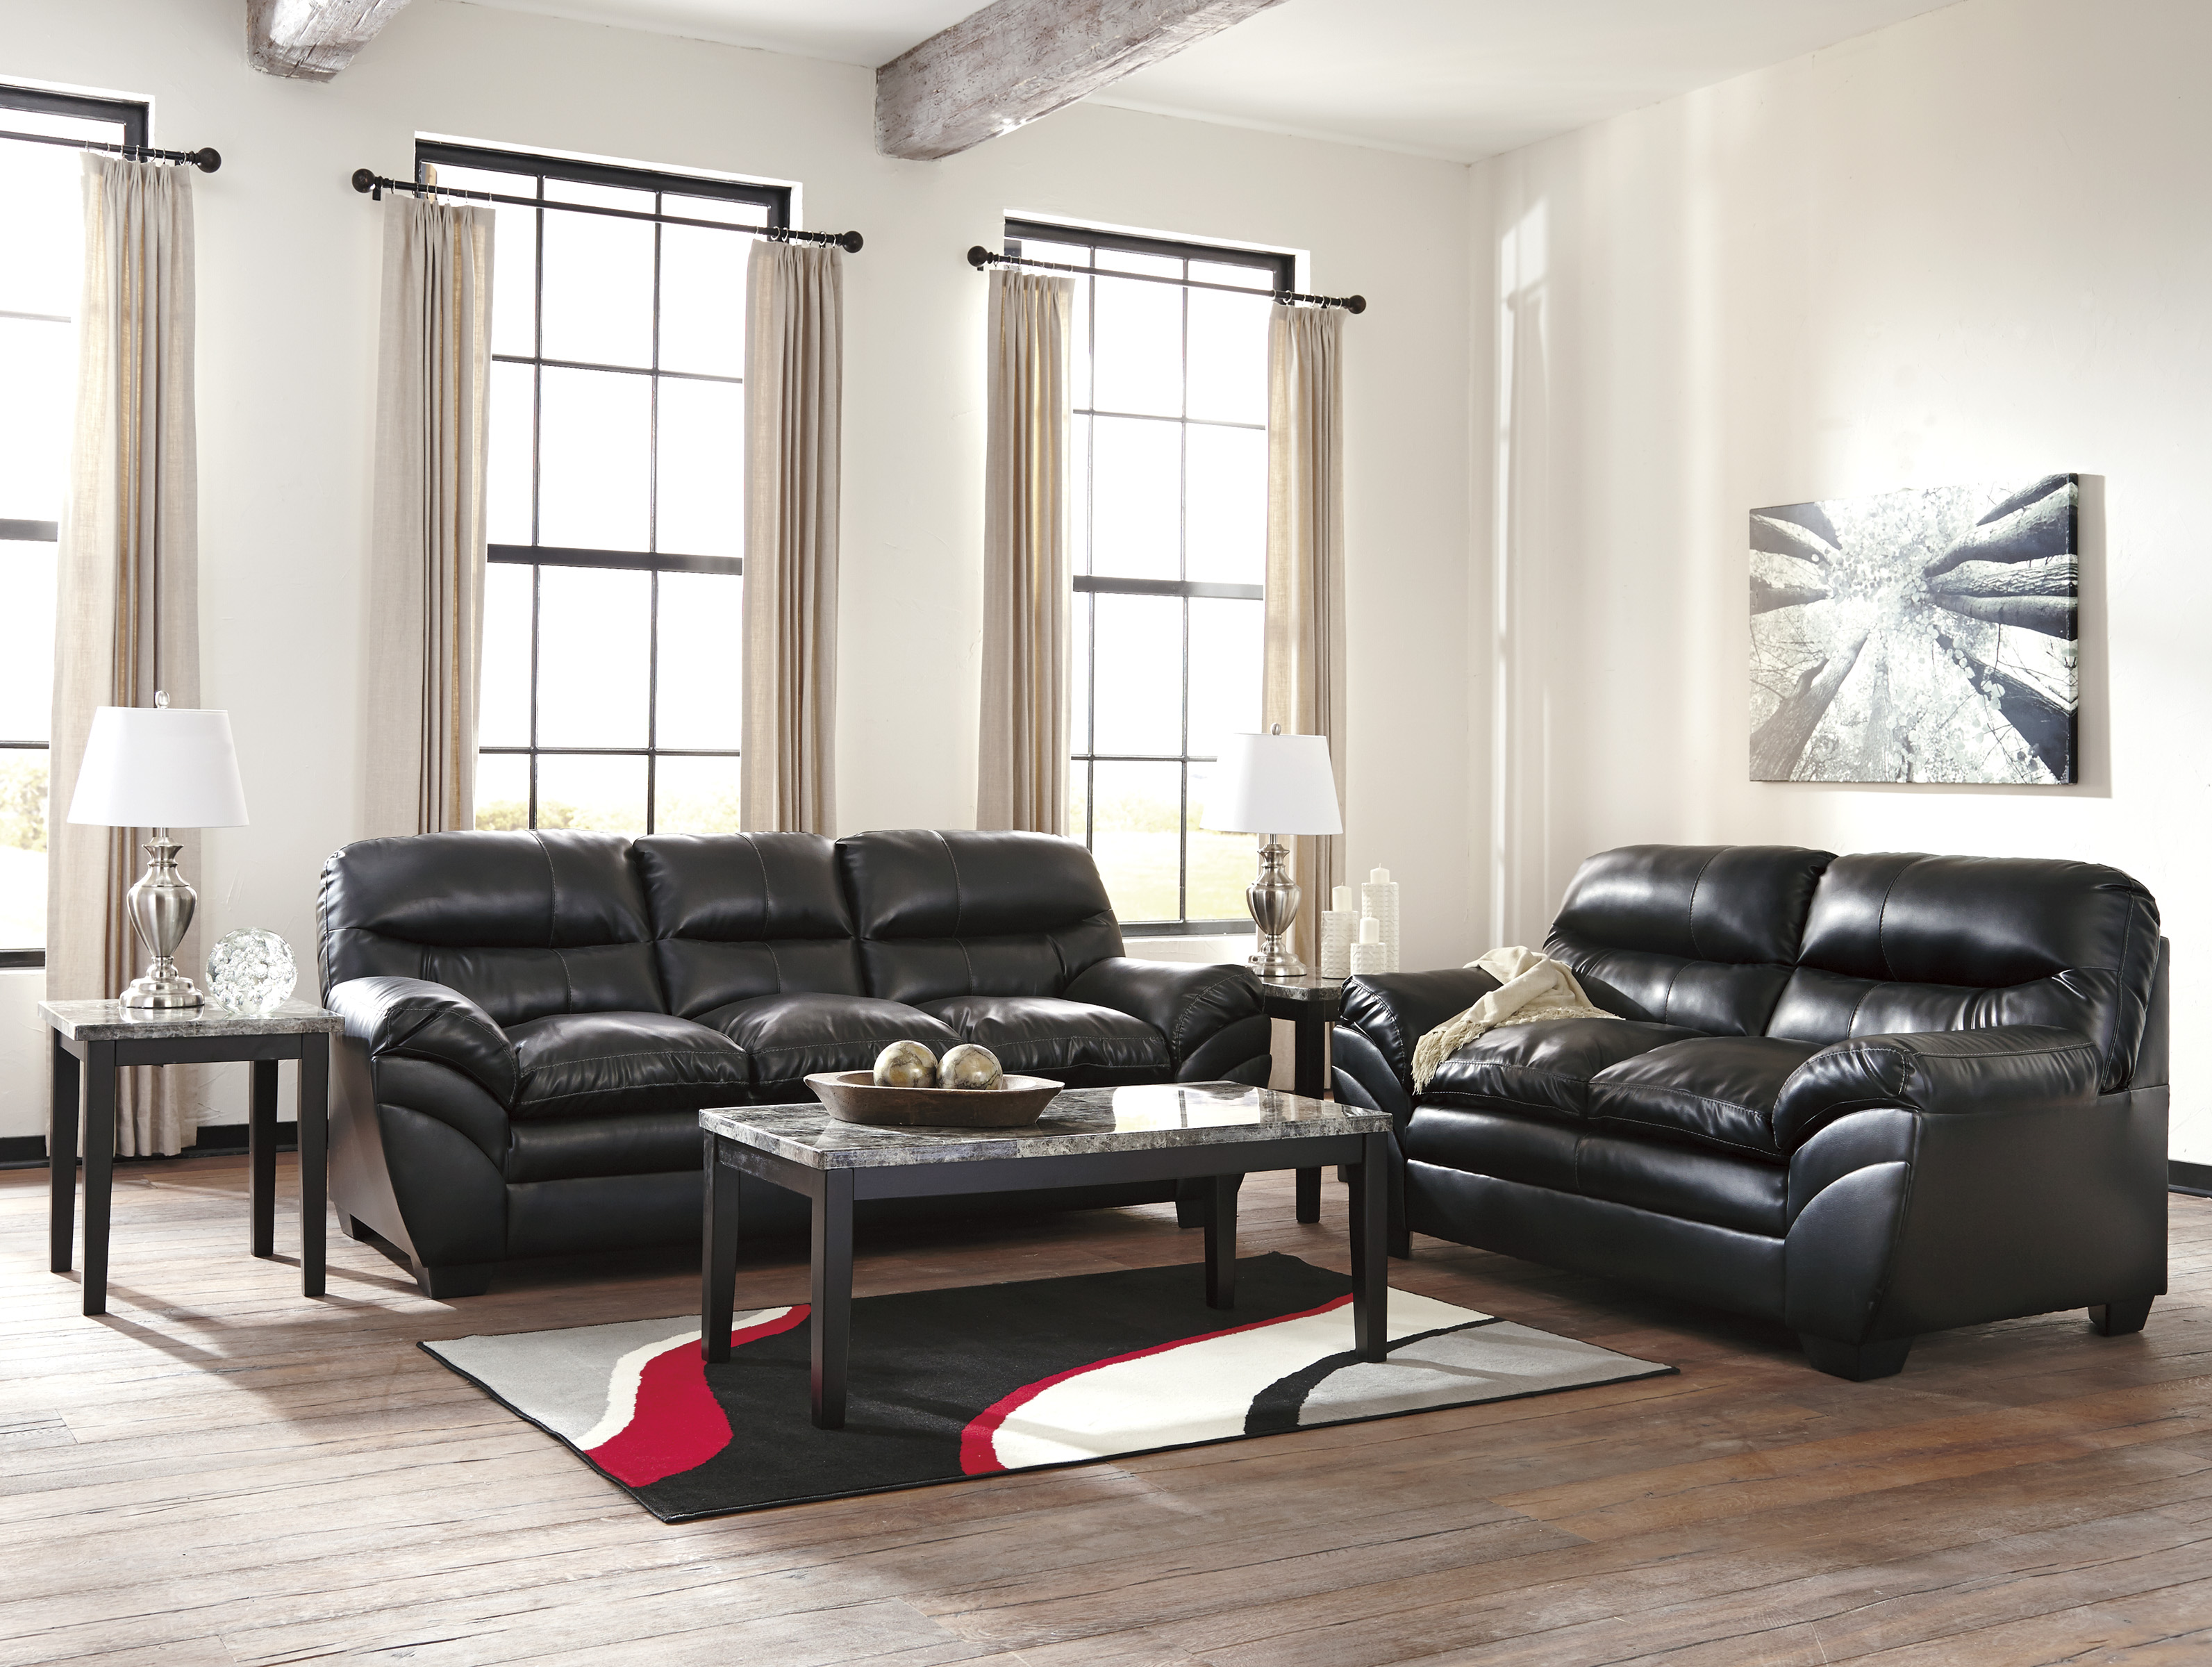 Leather sofas family discount furniture for Cheap affordable furniture